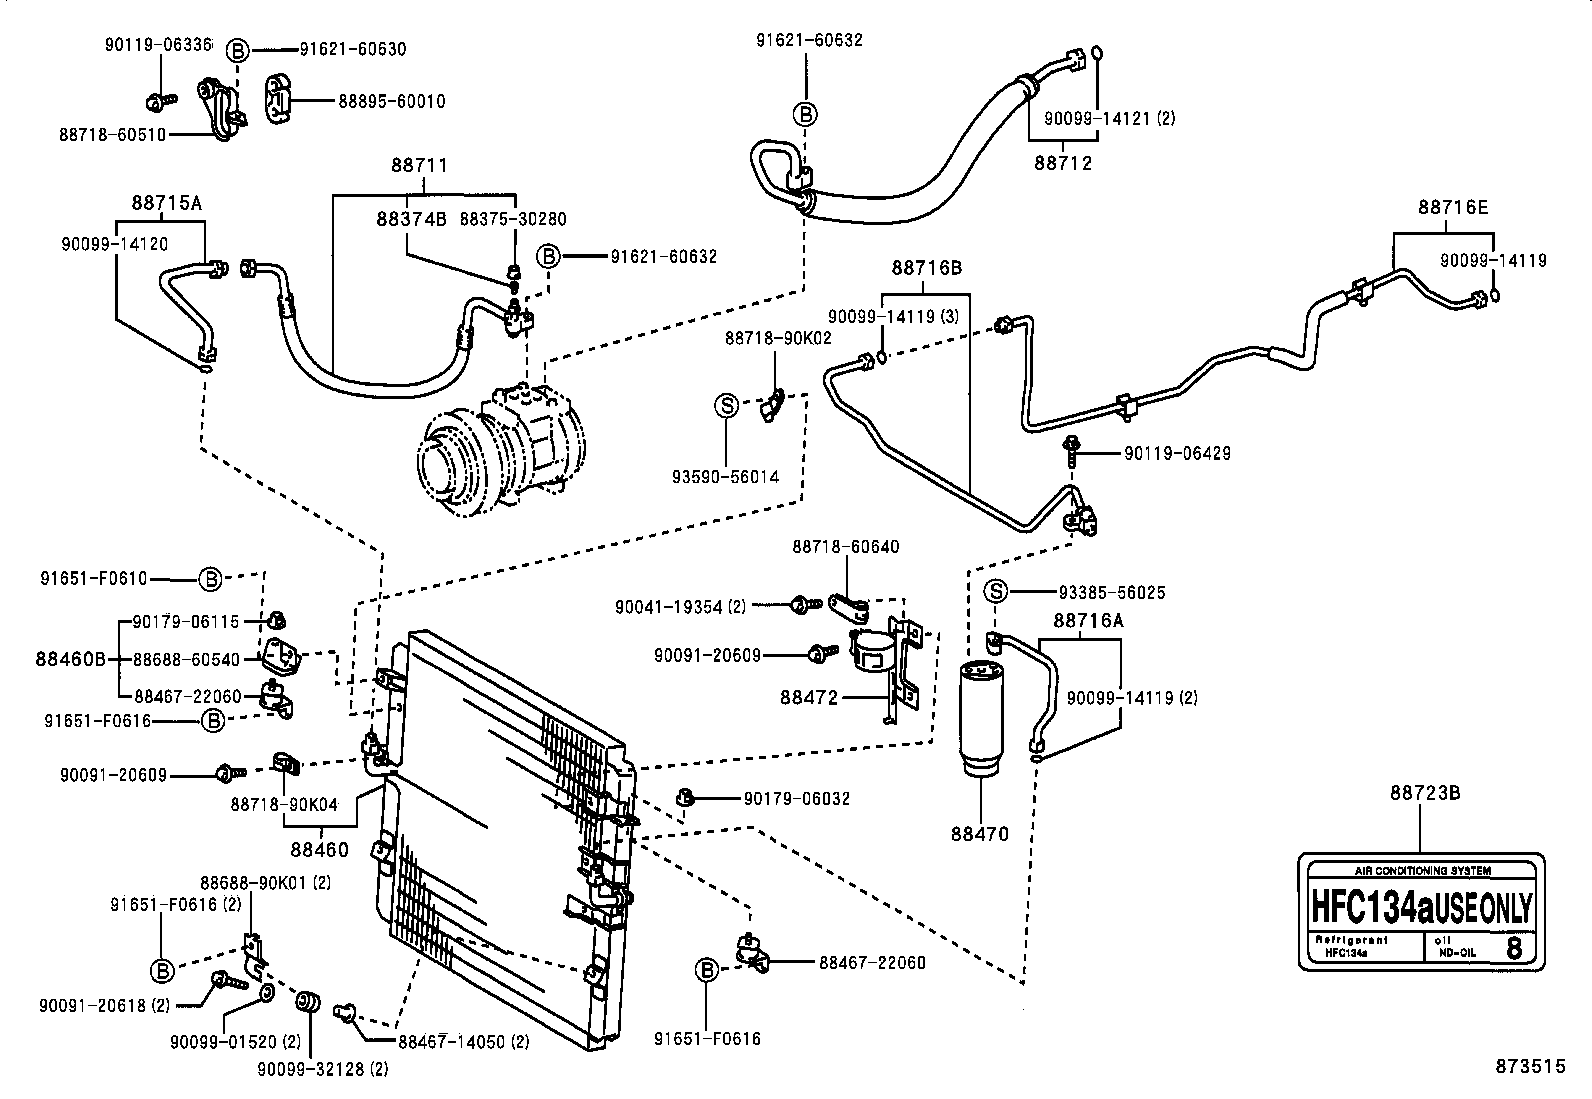 Chrysler Pt Cruiser 2 0 2011 Specs And Images moreover Serpentine Belt Diagram 2008 Kia Sedona V6 38 Liter Engine 05197 moreover Mazda 6 Air Conditioning Diagram Html further Red Lion Rlag Lct Motor Repair Parts furthermore 1997 Ford F150 4 6 Engine Firing Order Diagram 16 Pictures. on 4 6 liter engine diagram